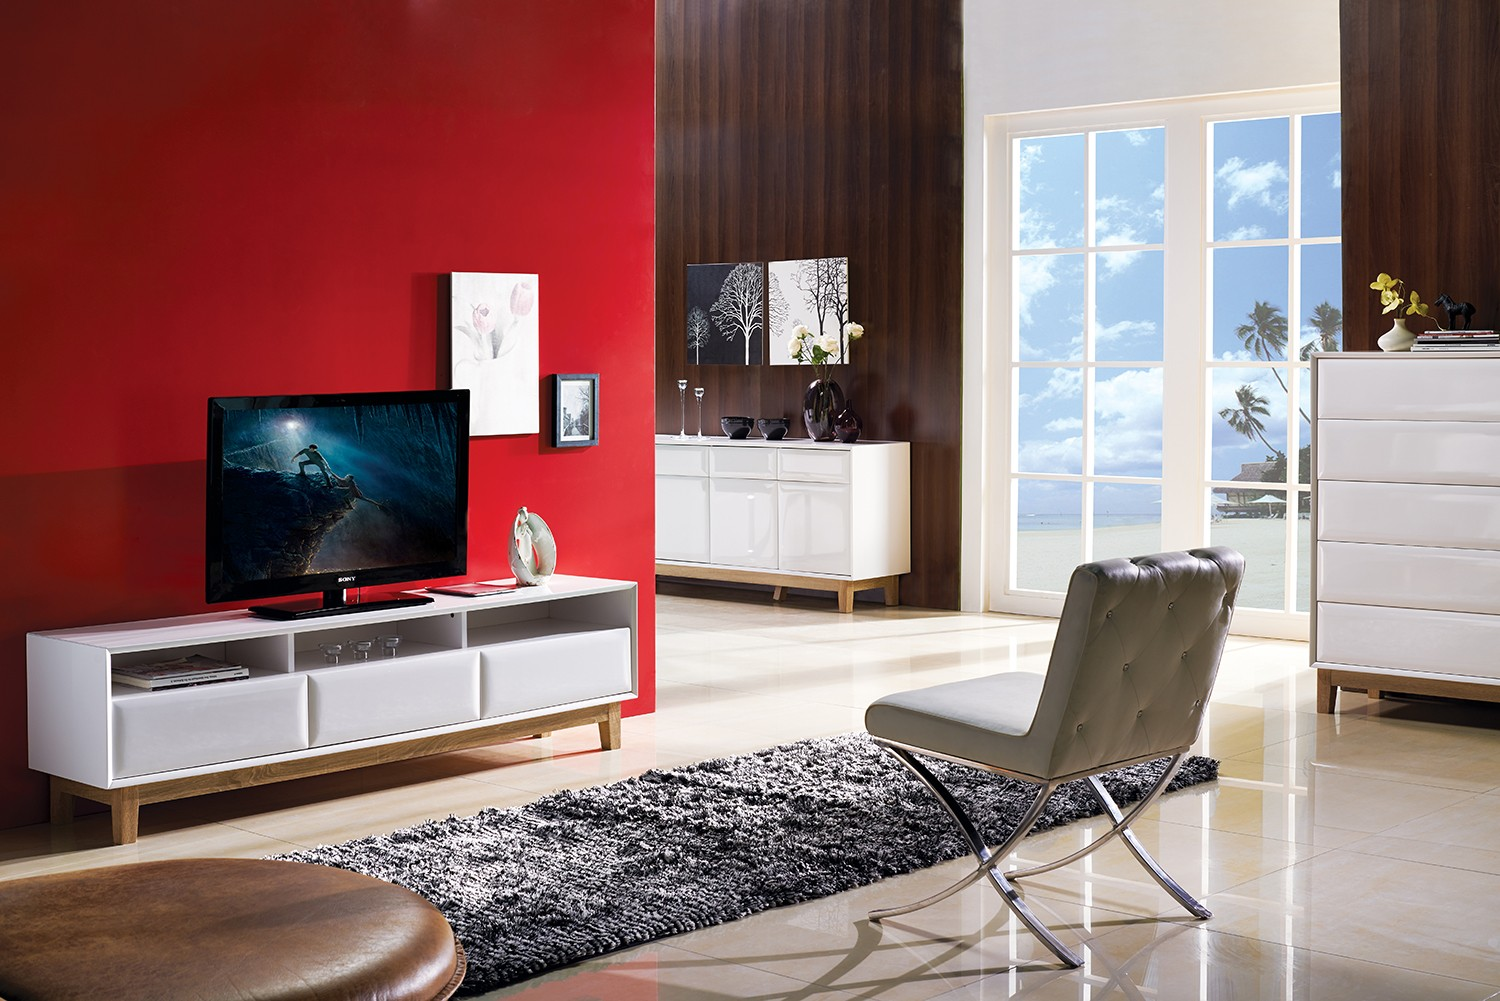 White Gloss Furniture Living Room Milano White Gloss Tv Stand With Oak Legs Sideboards Sena